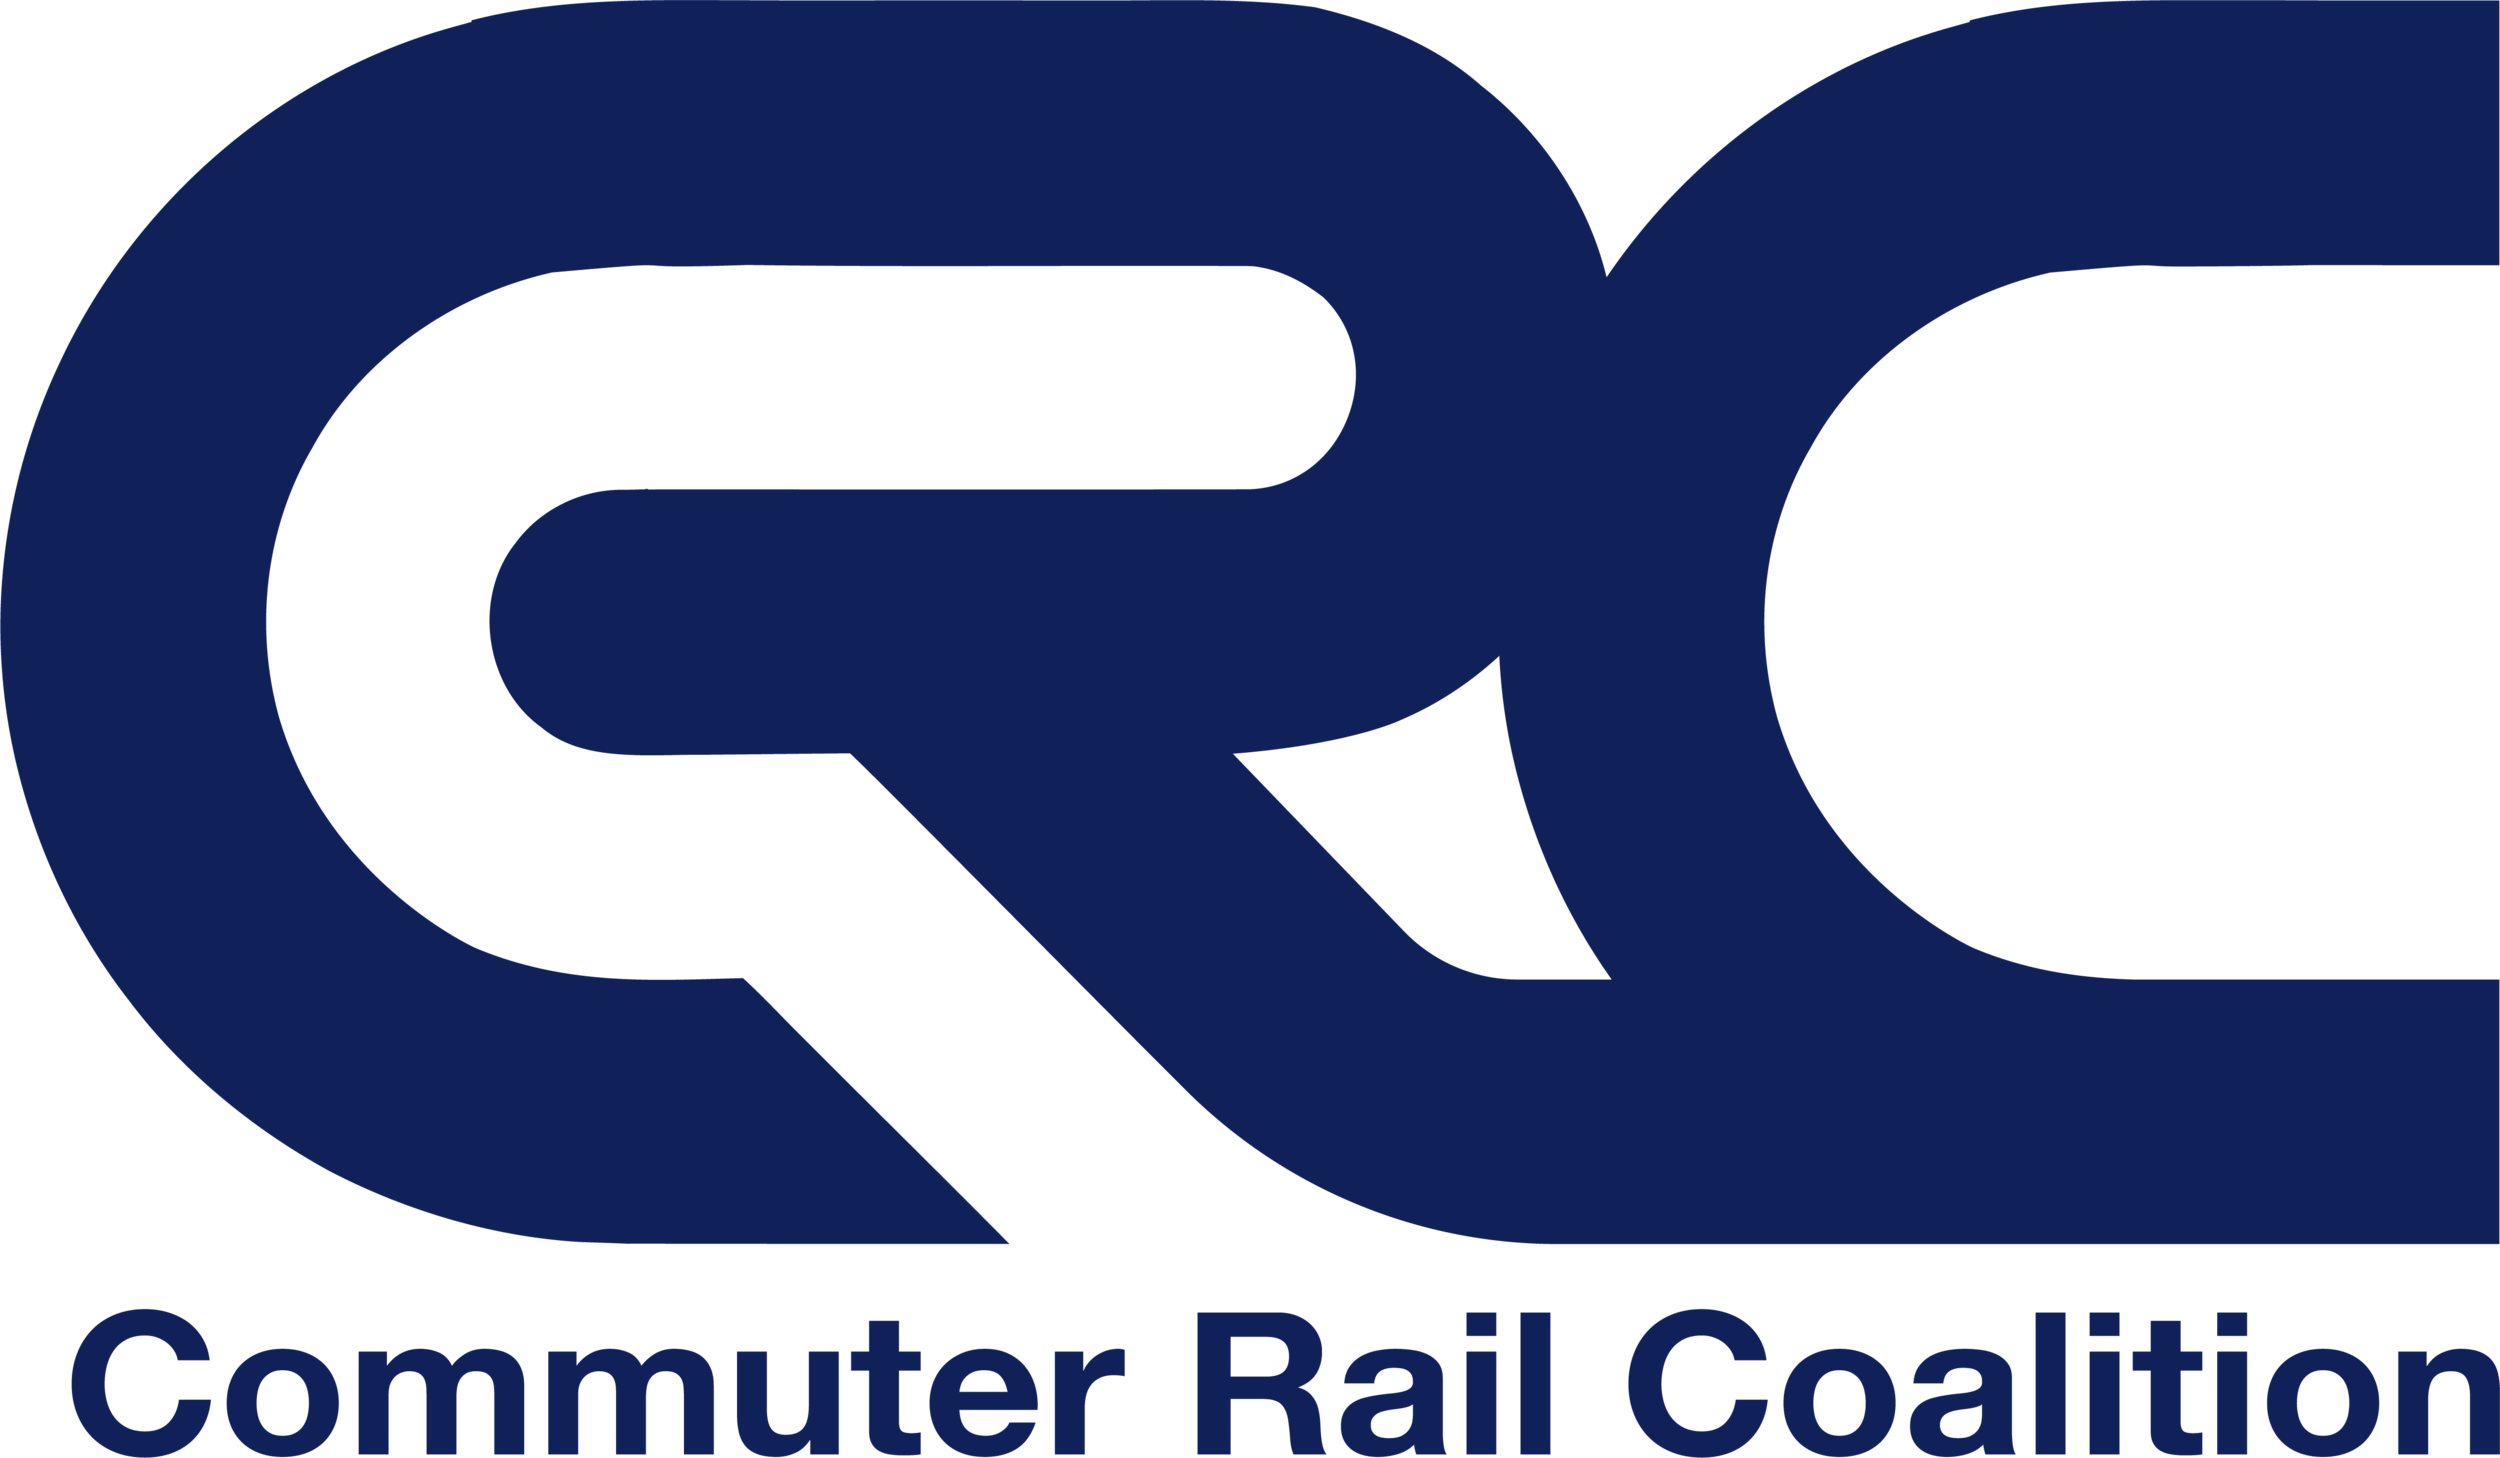 Commuter Rail Coalition_Almost Blue.png